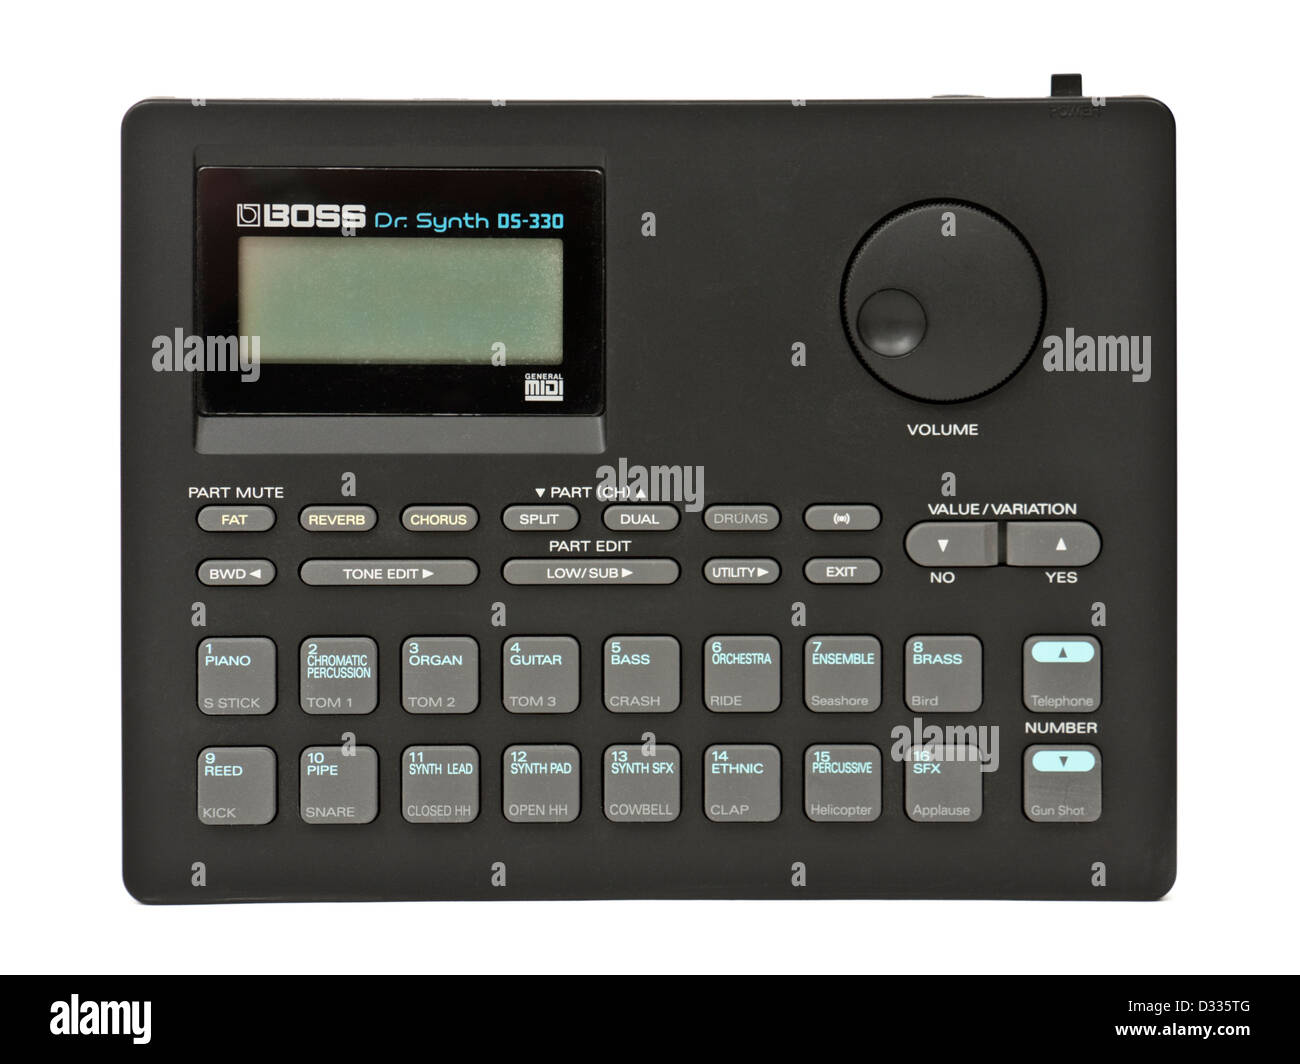 Boss Dr. Synth DS-330 portable synthesizer module (1992), one of the great synthesizers of the 1990's. - Stock Image